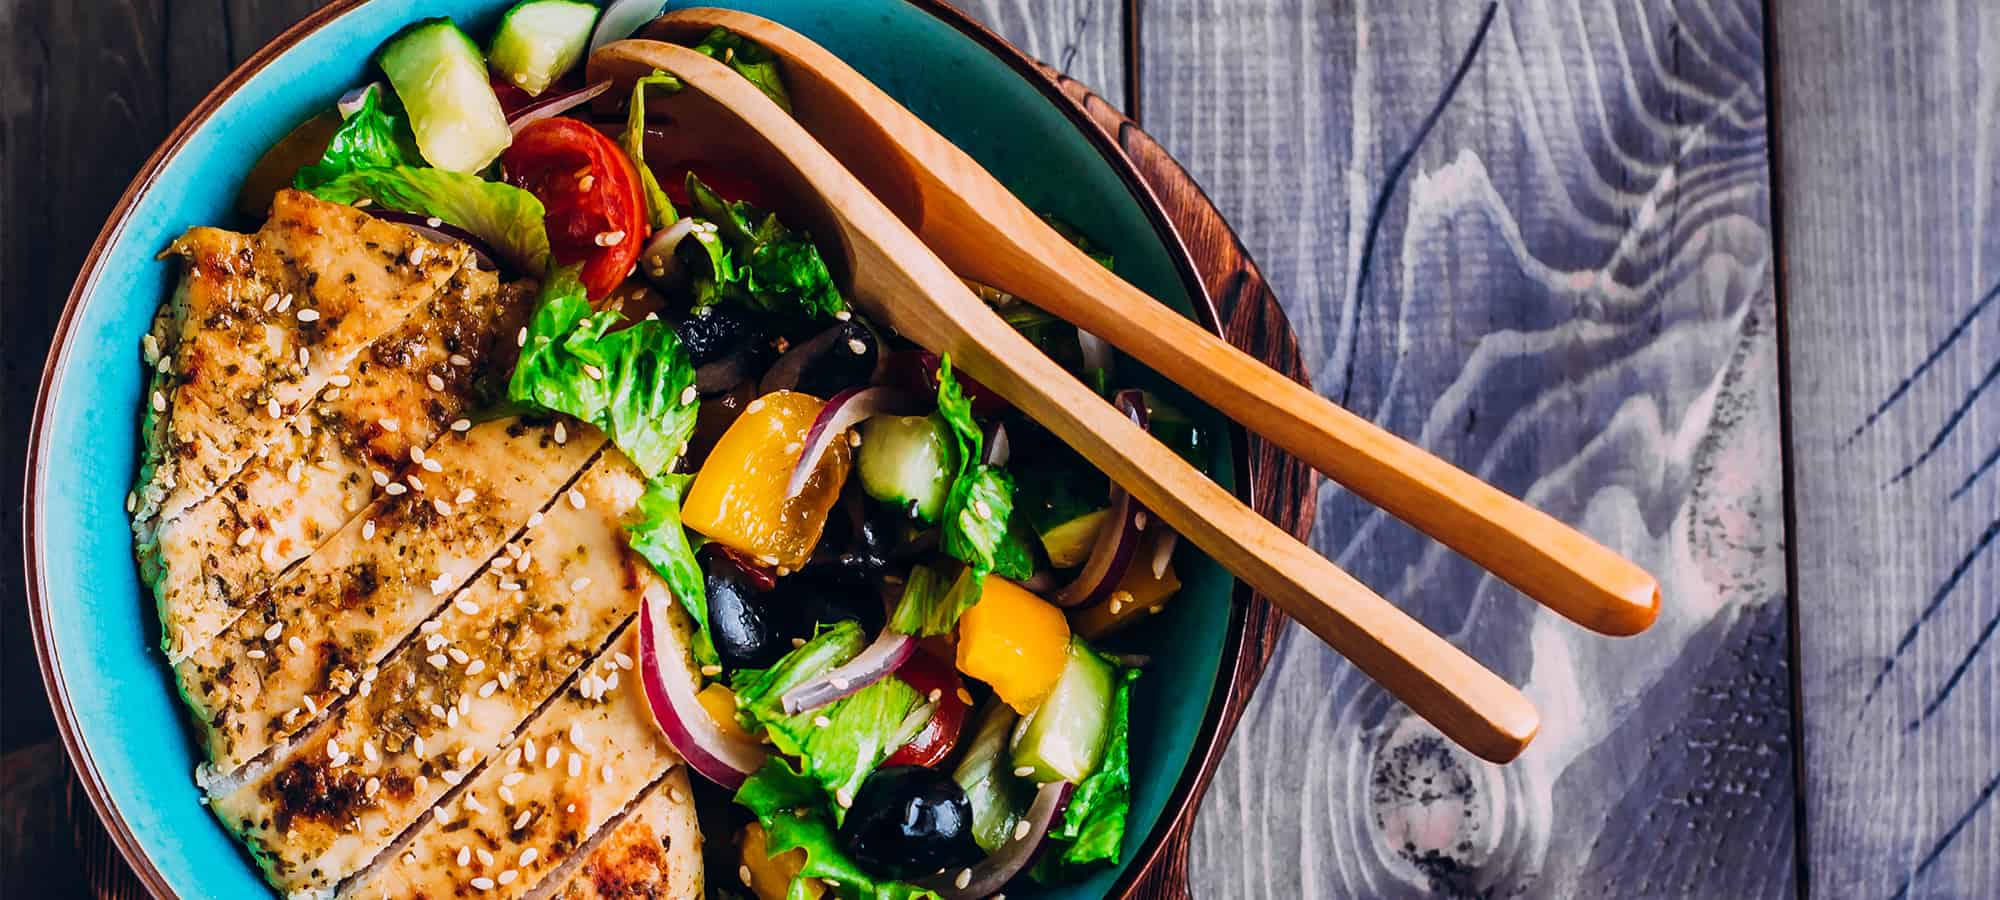 Greek Salad and Spiced Grilled Chicken